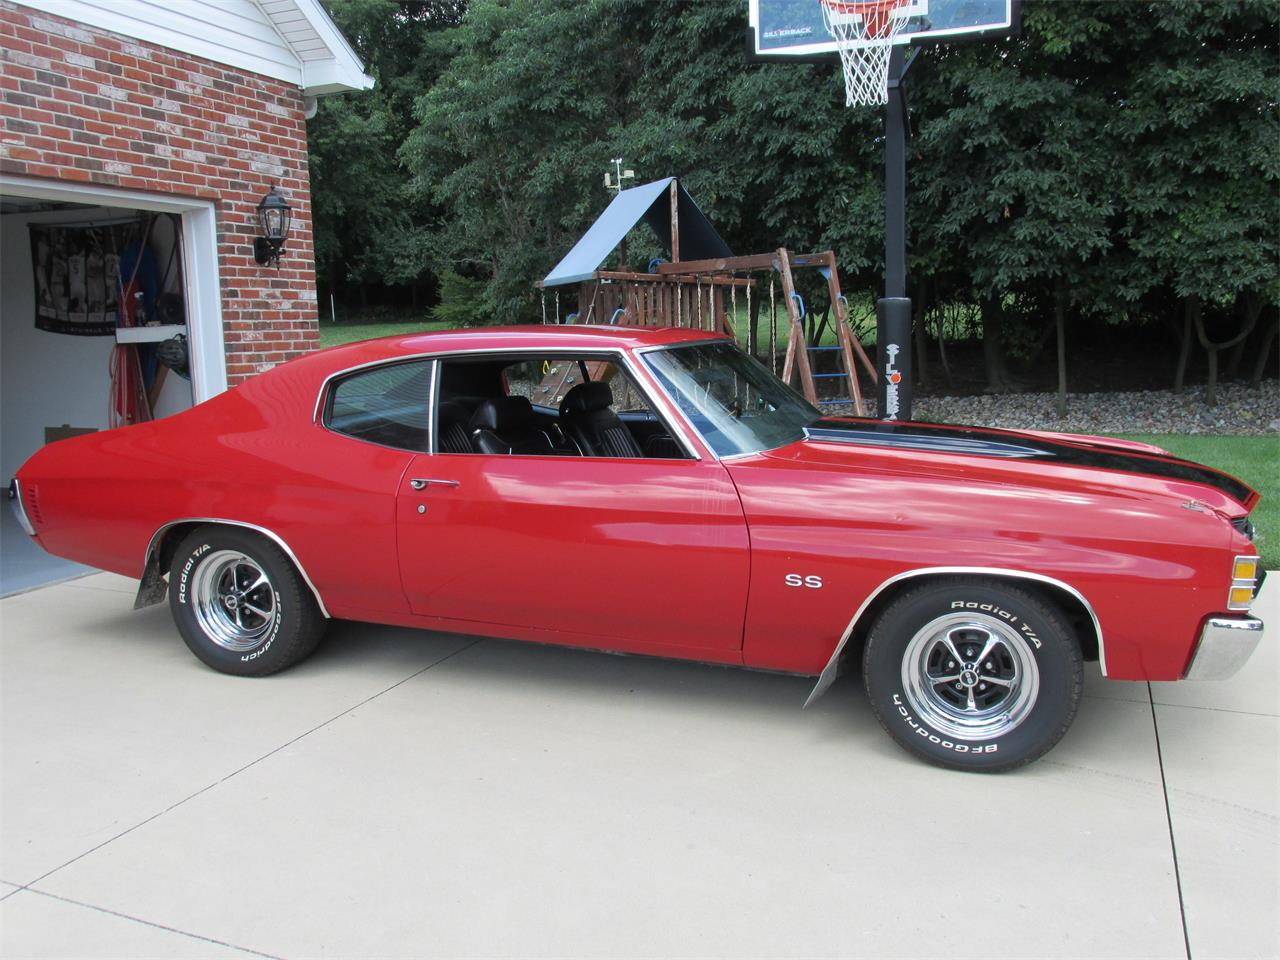 Large Picture of '71 Chevelle SS - $26,500.00 Offered by a Private Seller - JRT1